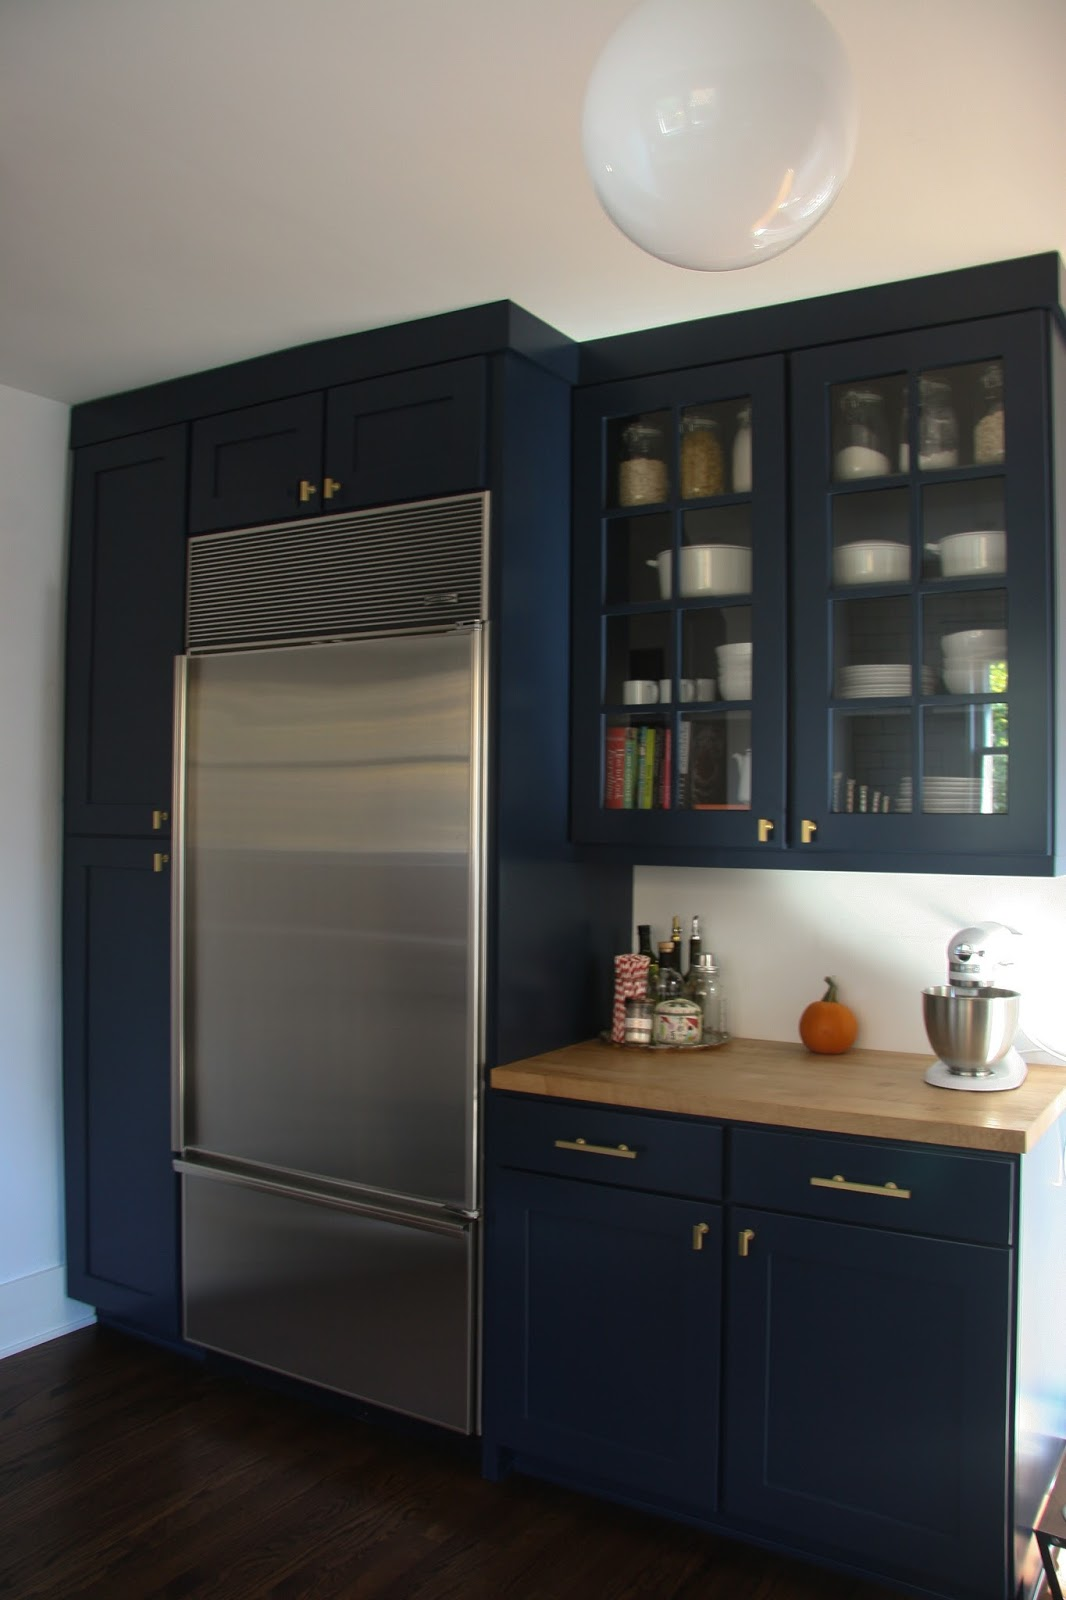 Marvelous Per Usual, If You Have Any Questions About Anything Please Feel Free To Ask!  Also, It Should Be Known That The Color Of Our Cabinets Seems To Look  Different ...